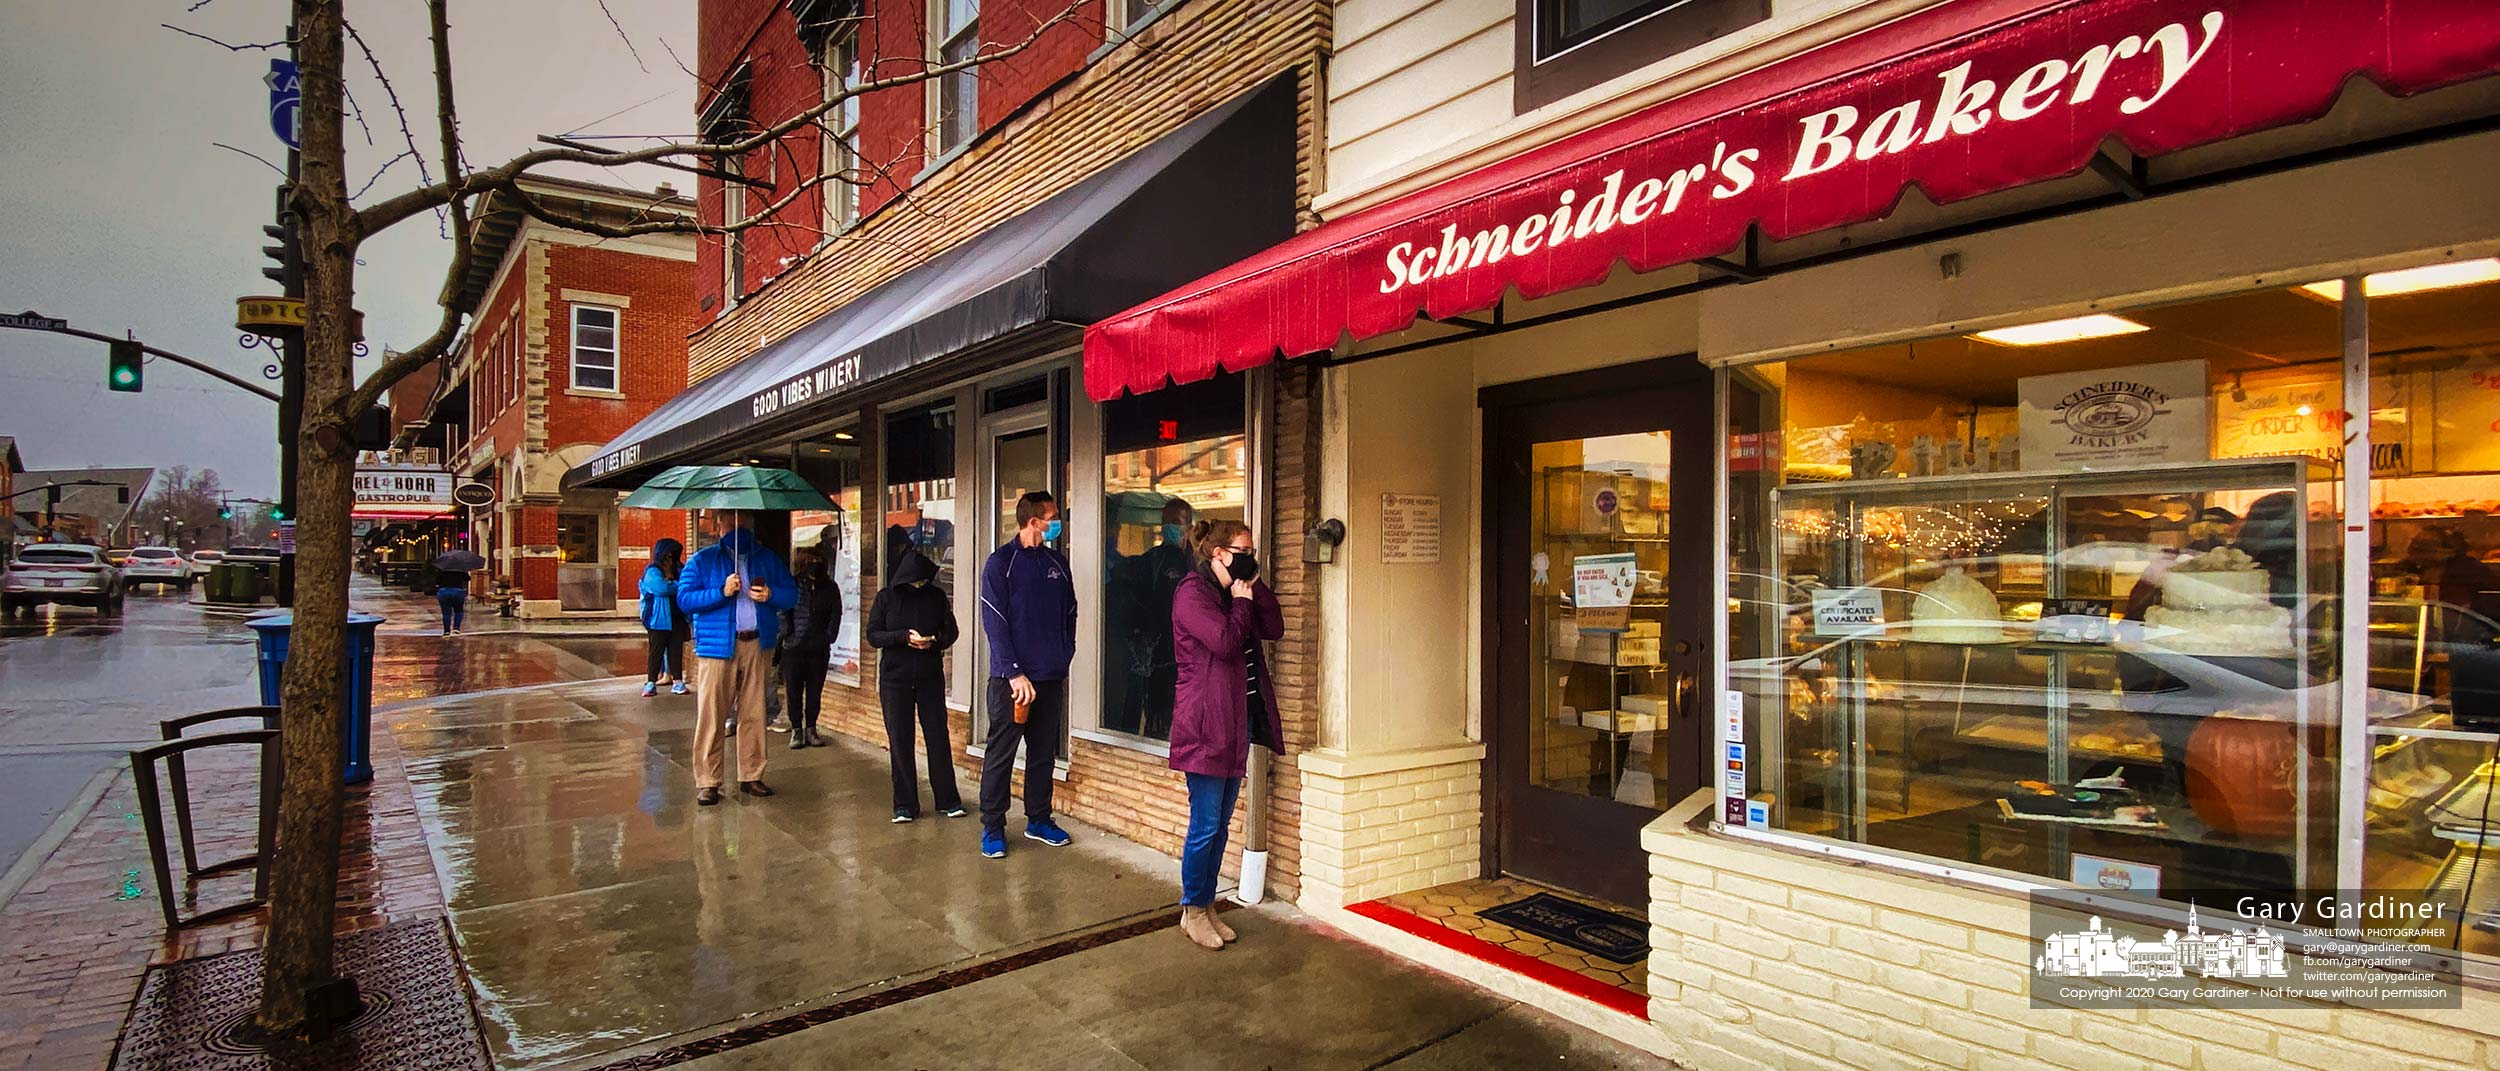 Customers line up at the proper social distance to step into Schneider's Bakery to pick up their Thanksgiving rolls, breads, pies, cakes, cookies, and donuts. My Final Photo for Nov. 25, 2020.